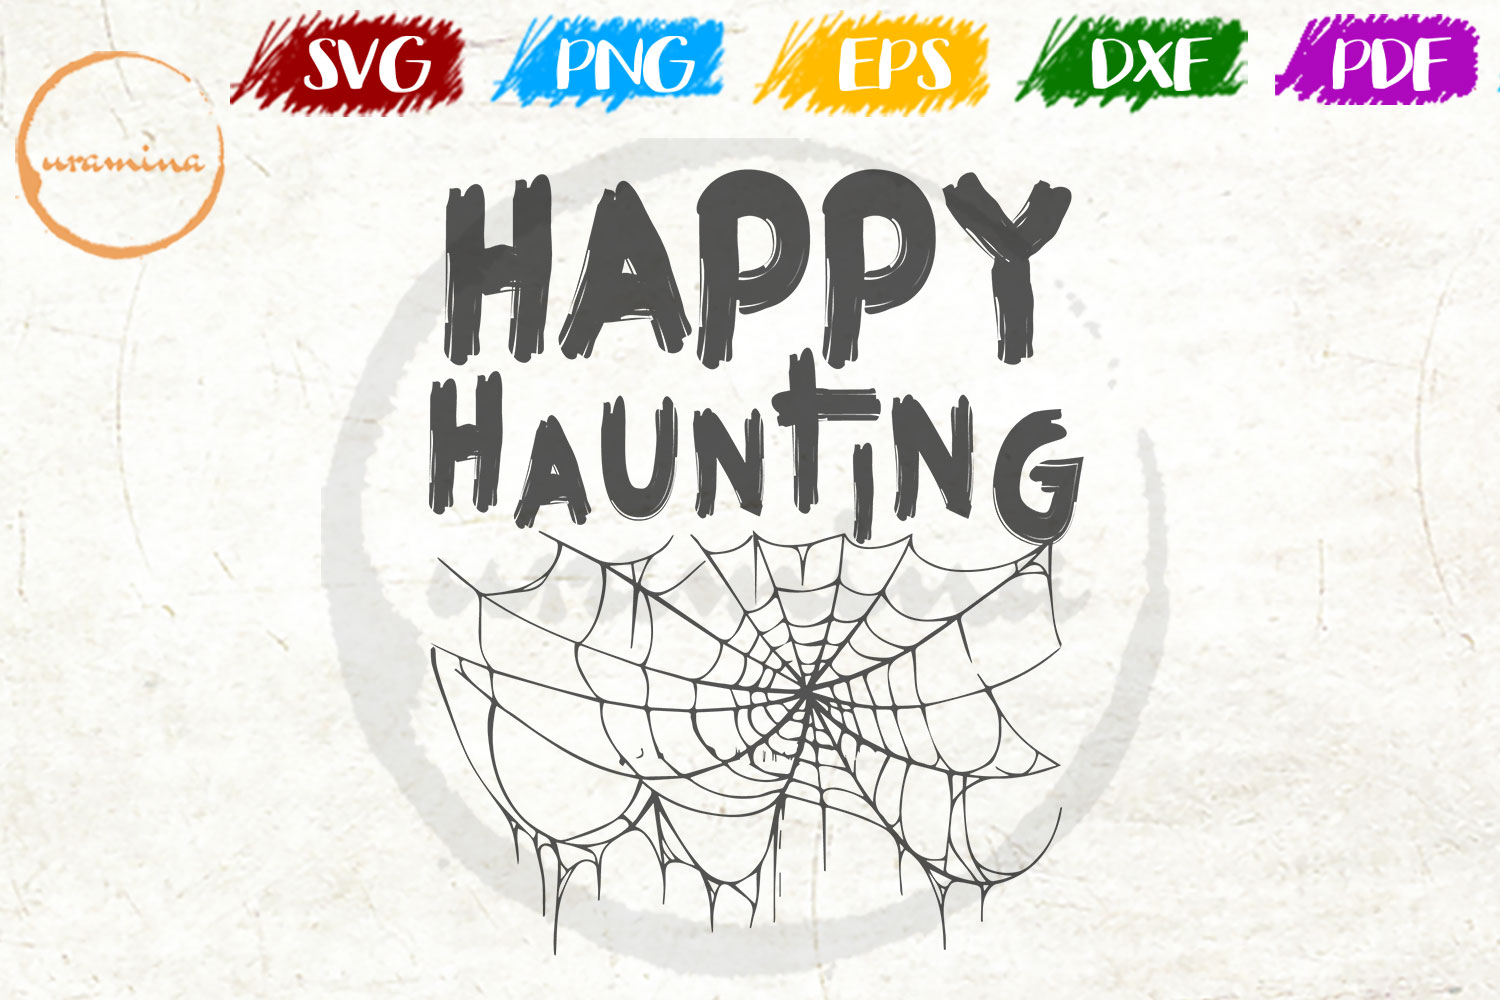 Download Free Happy Haunting Graphic By Uramina Creative Fabrica for Cricut Explore, Silhouette and other cutting machines.